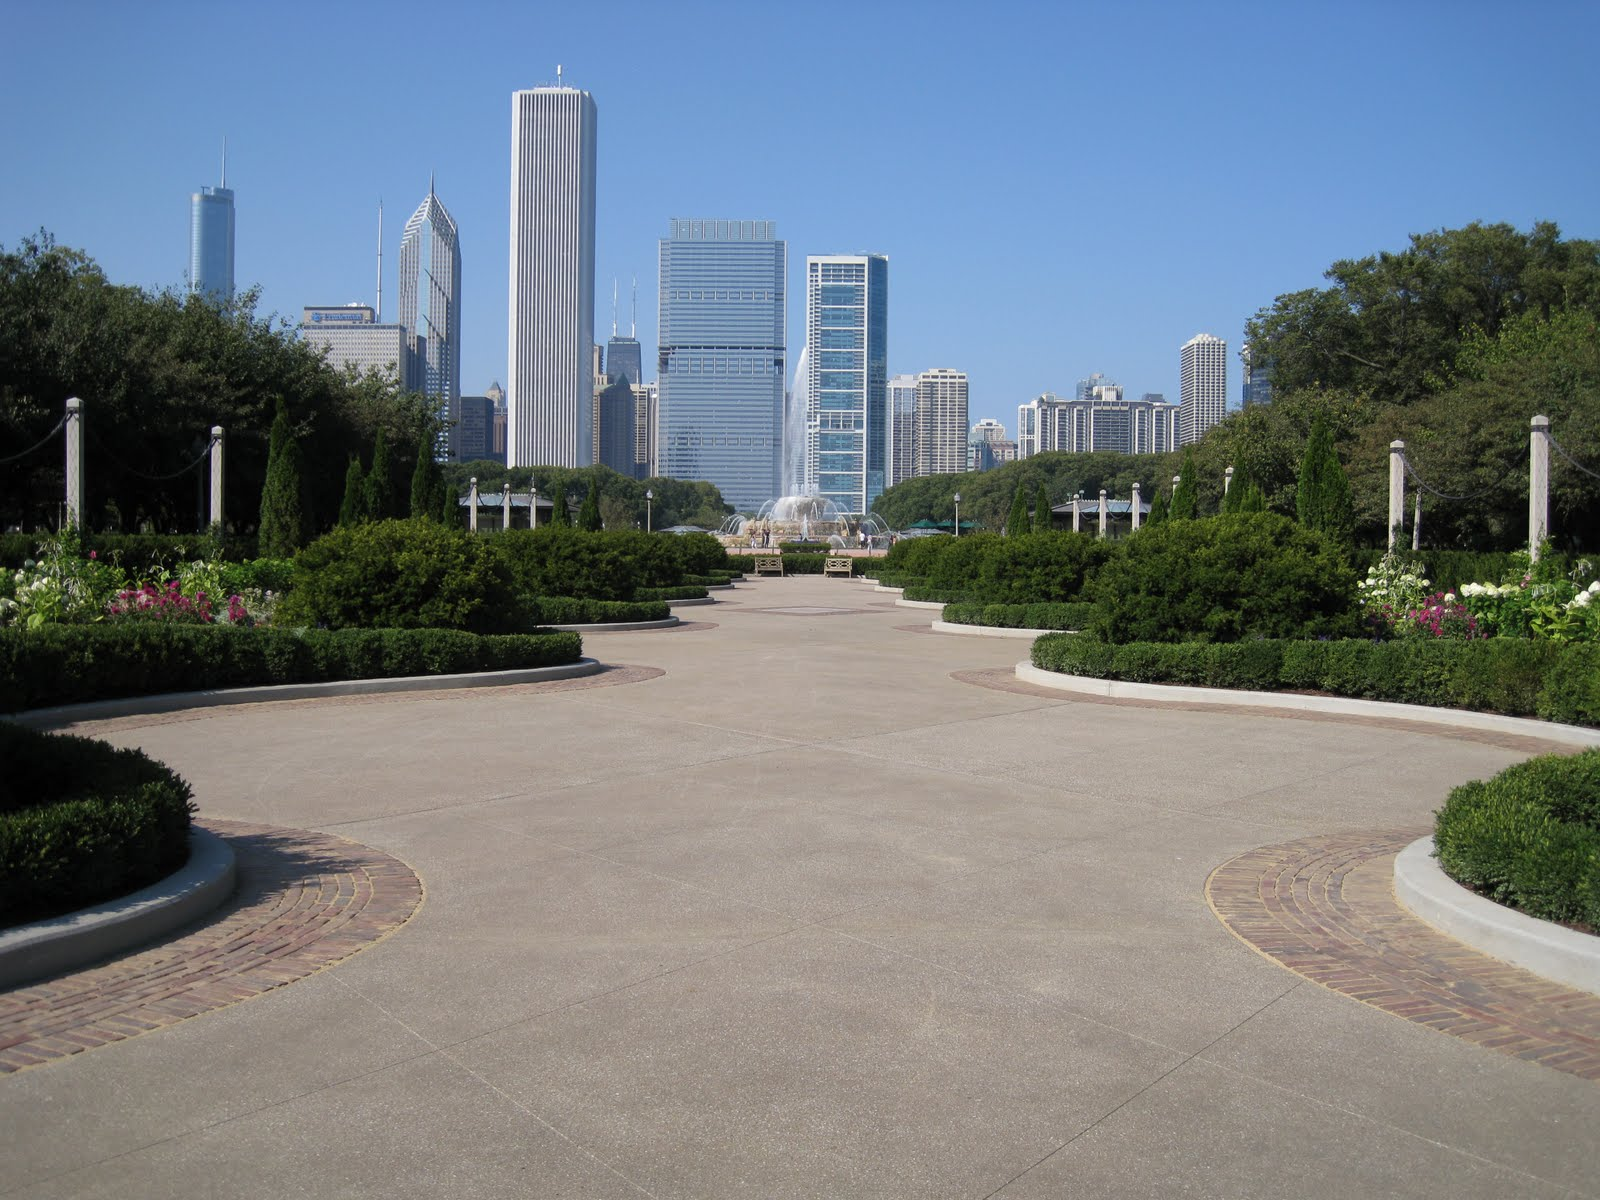 tiffanygarden2.jpg